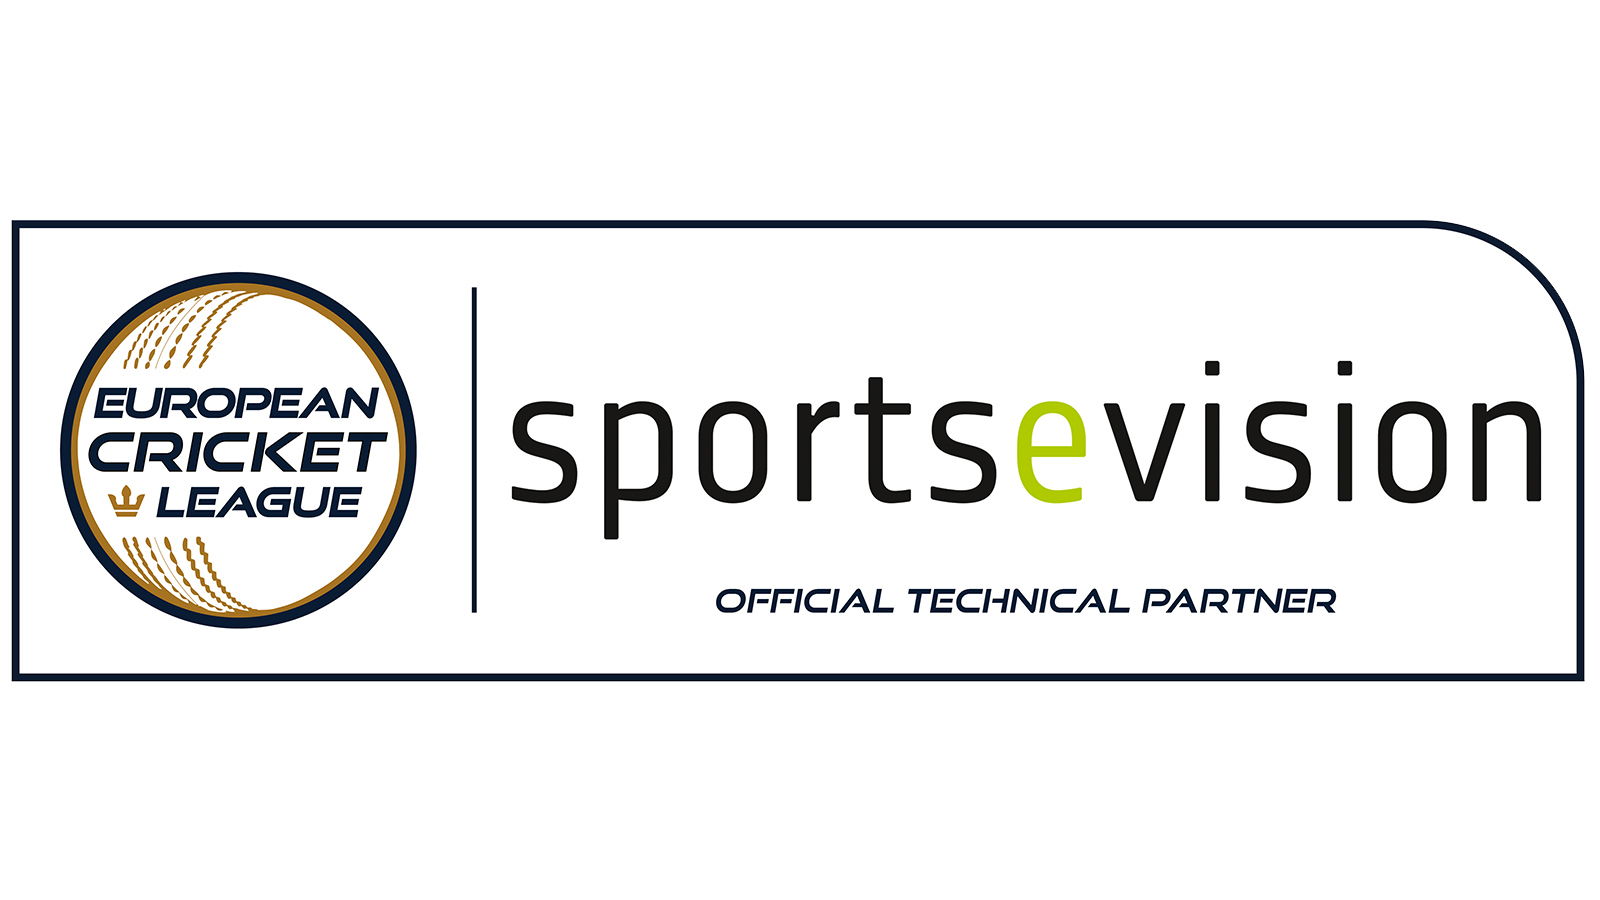 Sportsevision_1600x900.png